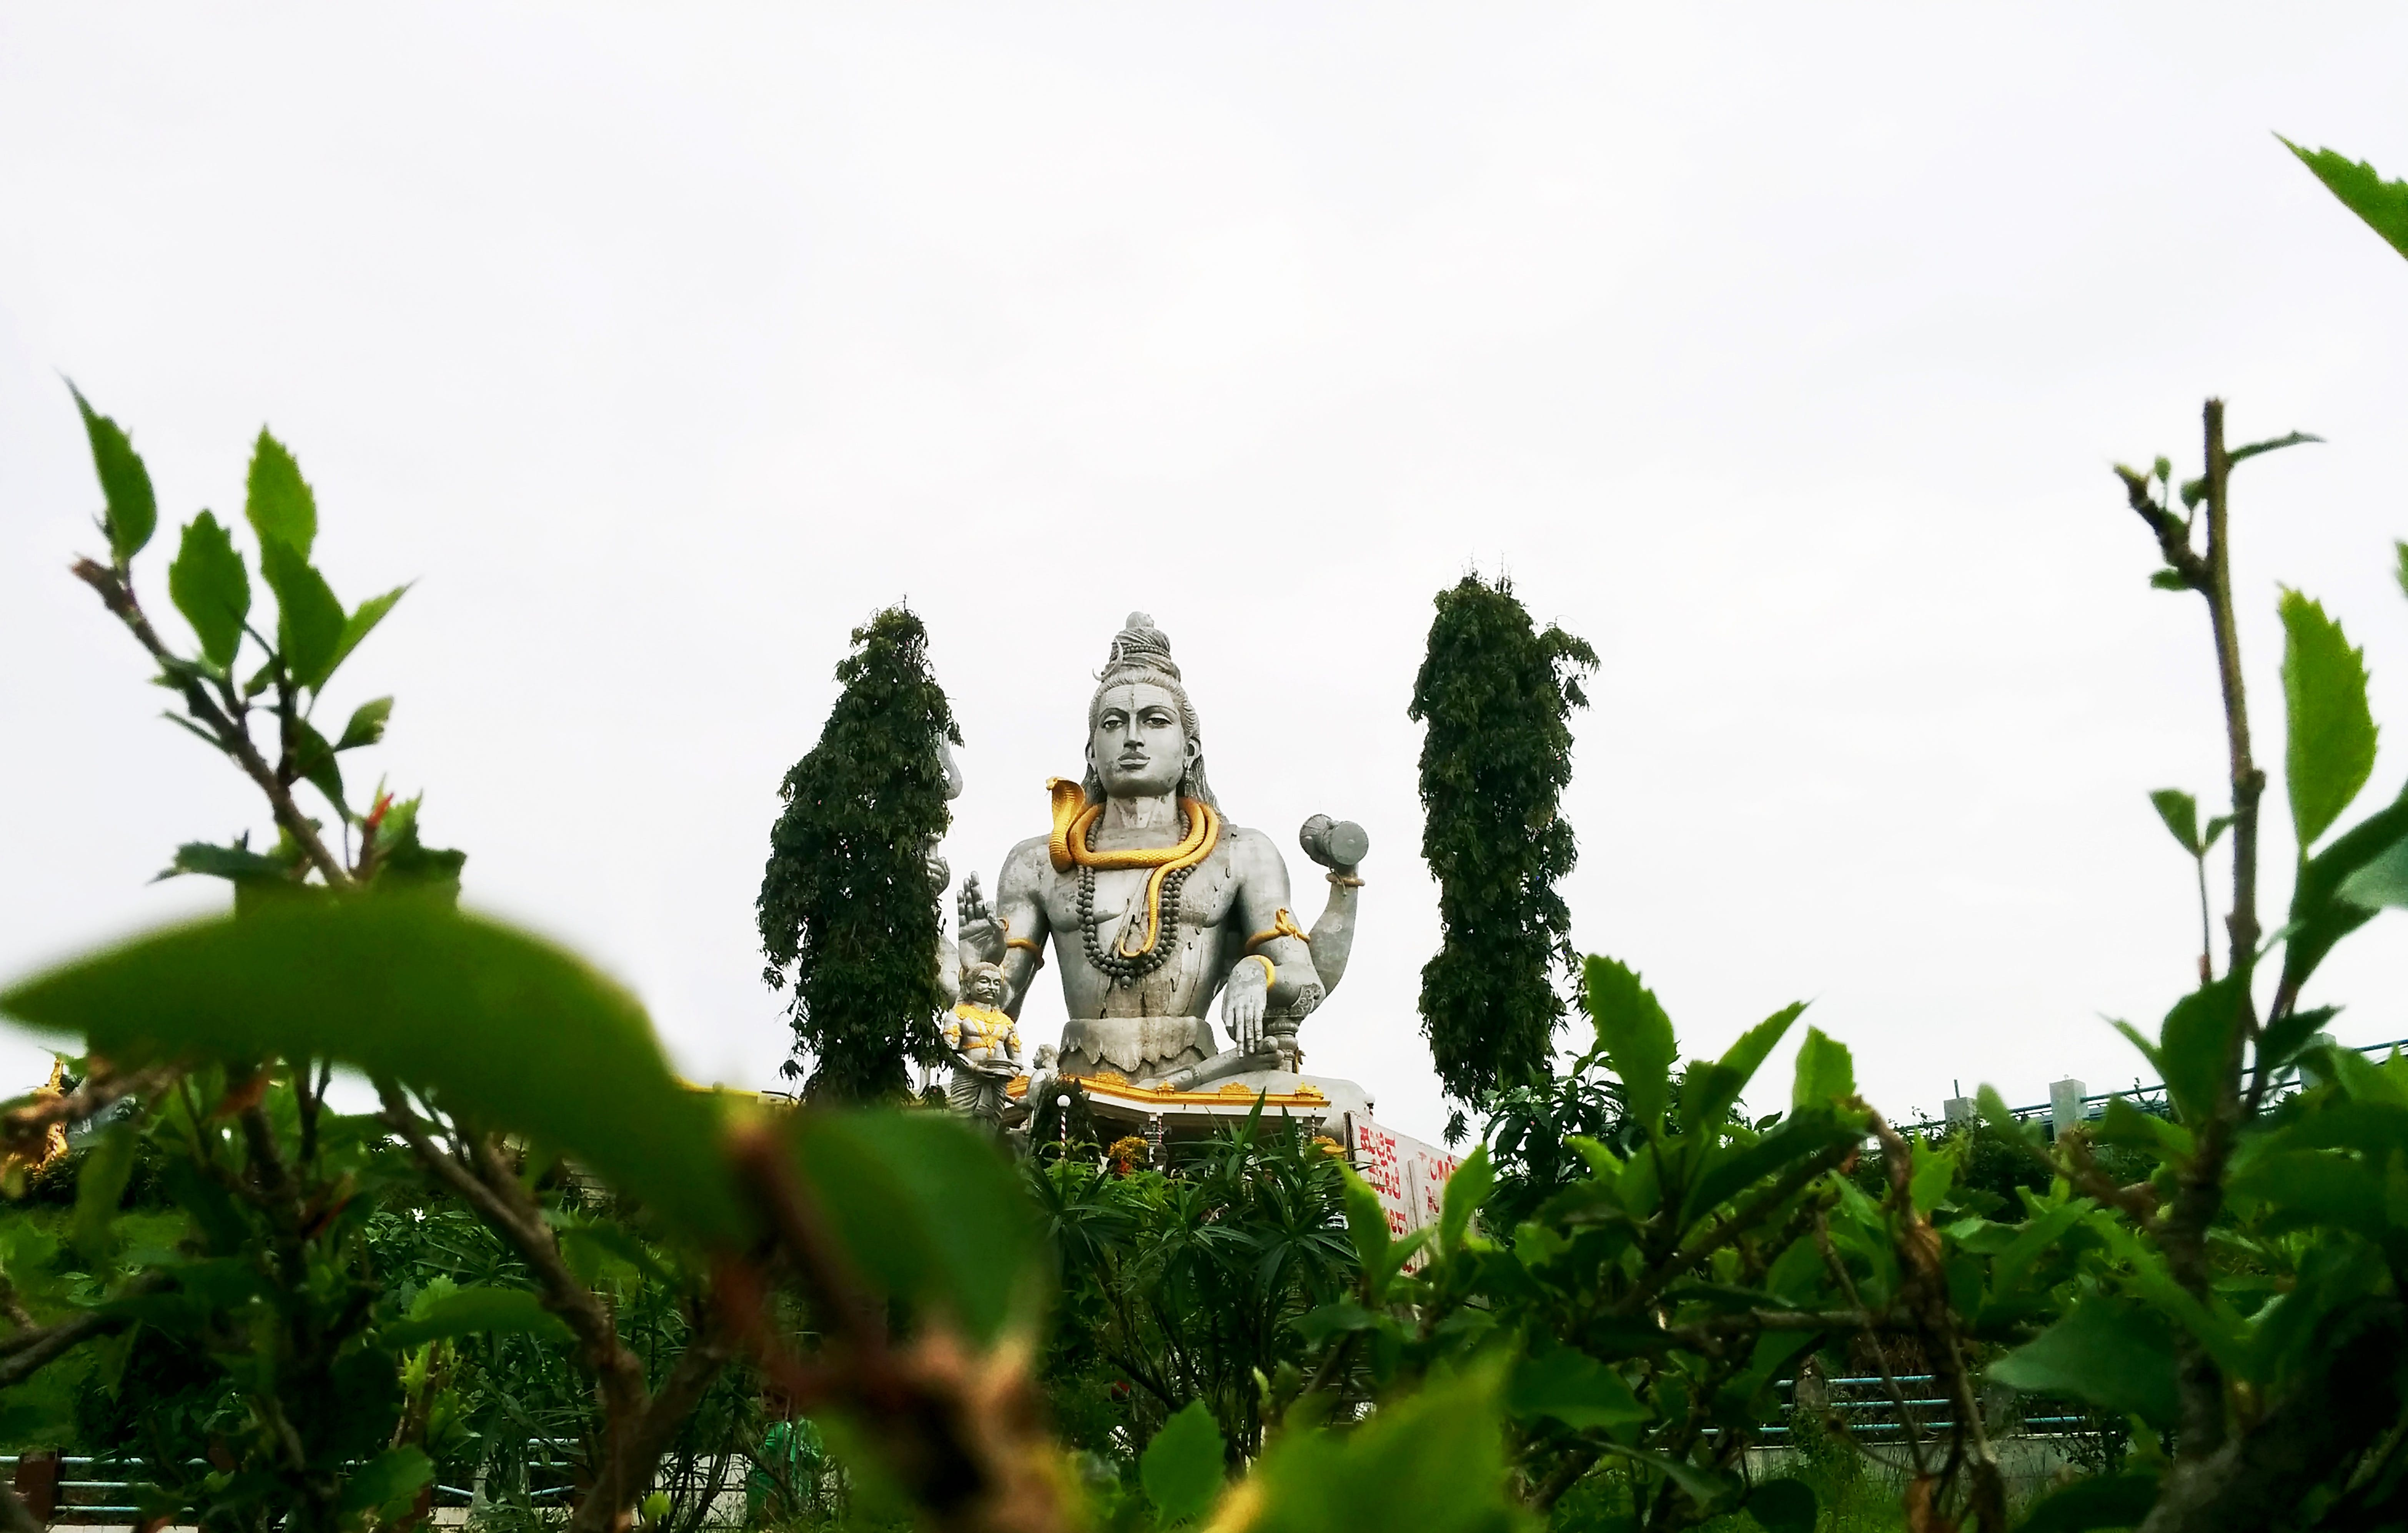 Statue on Other Side of Green Trees